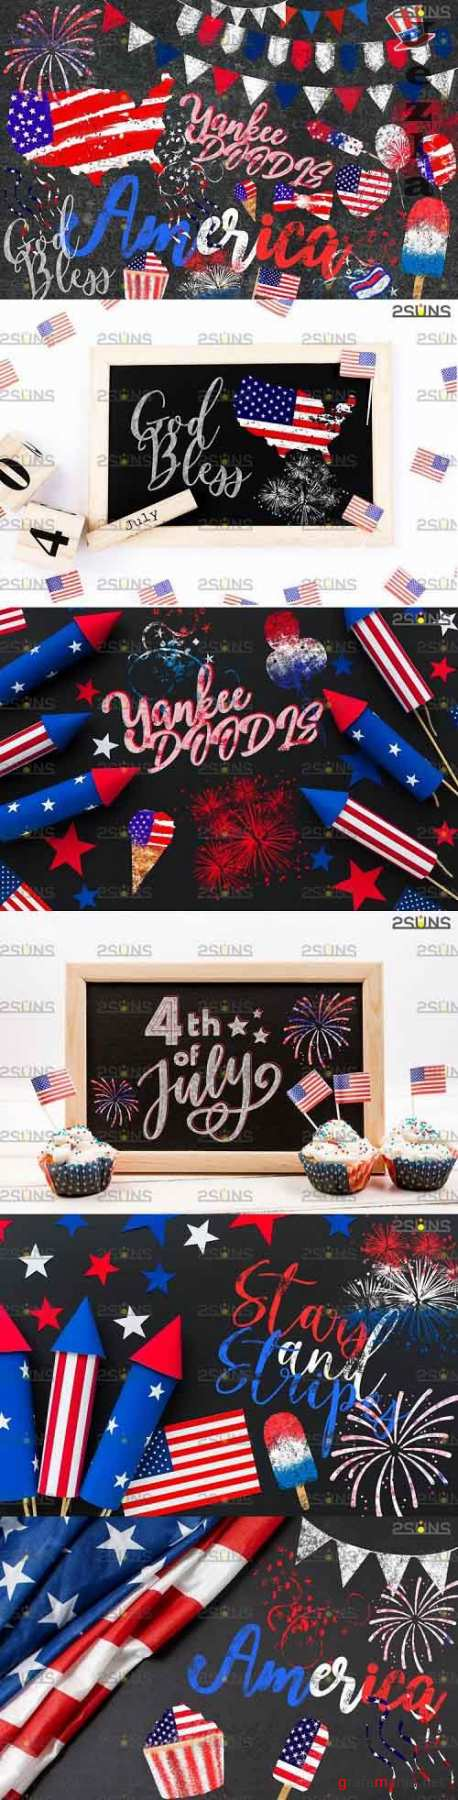 Chalk art overlay 4th of July, Photoshop overlay - 617062